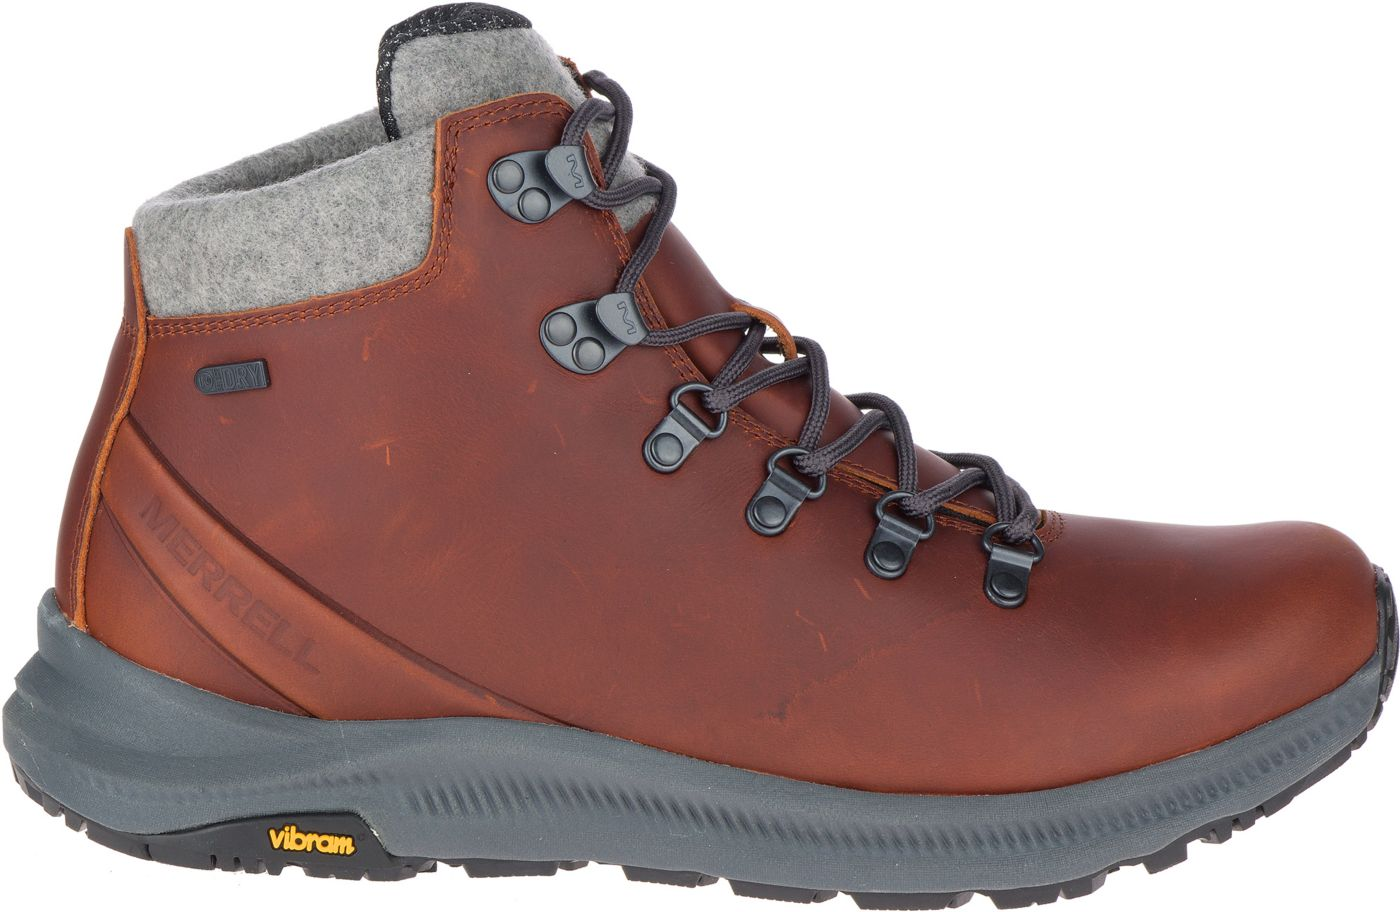 Merrell Men's Ontario Thermo Mid Waterproof Hiking Boots